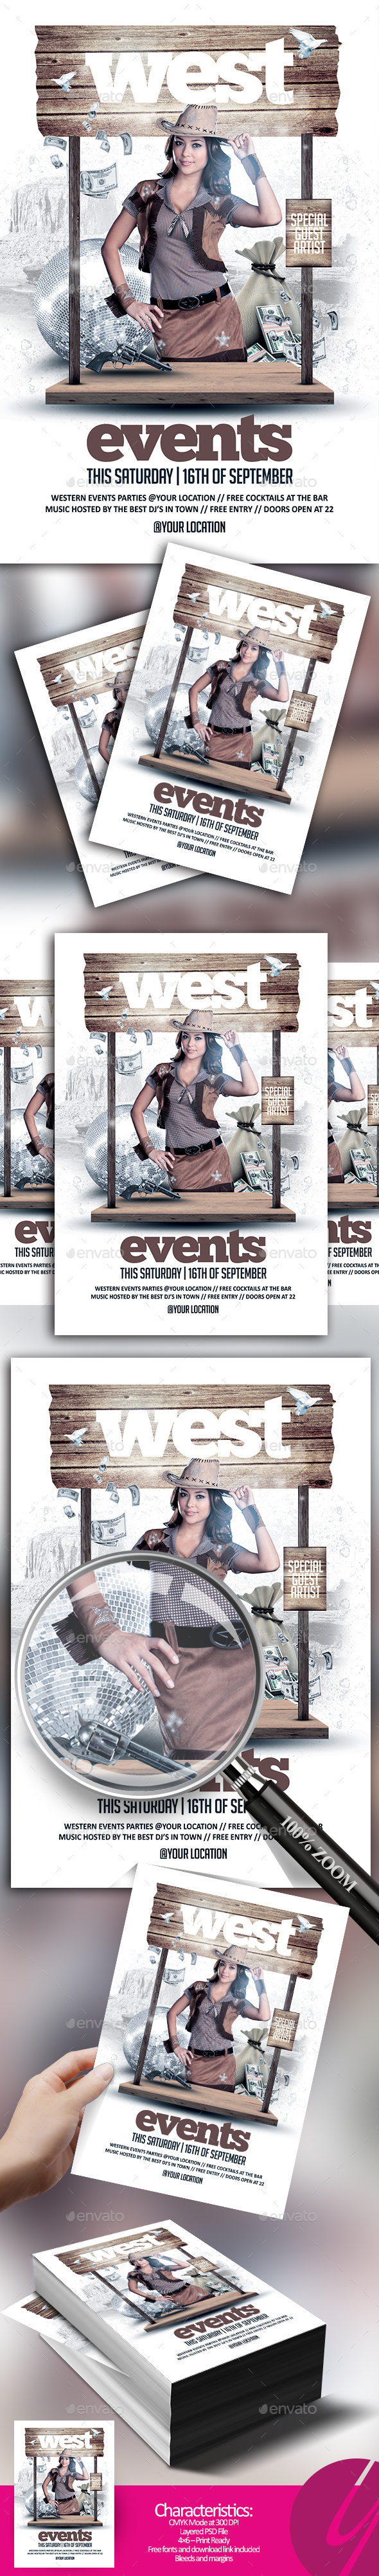 Western Events Flyer - Clubs & Parties Events